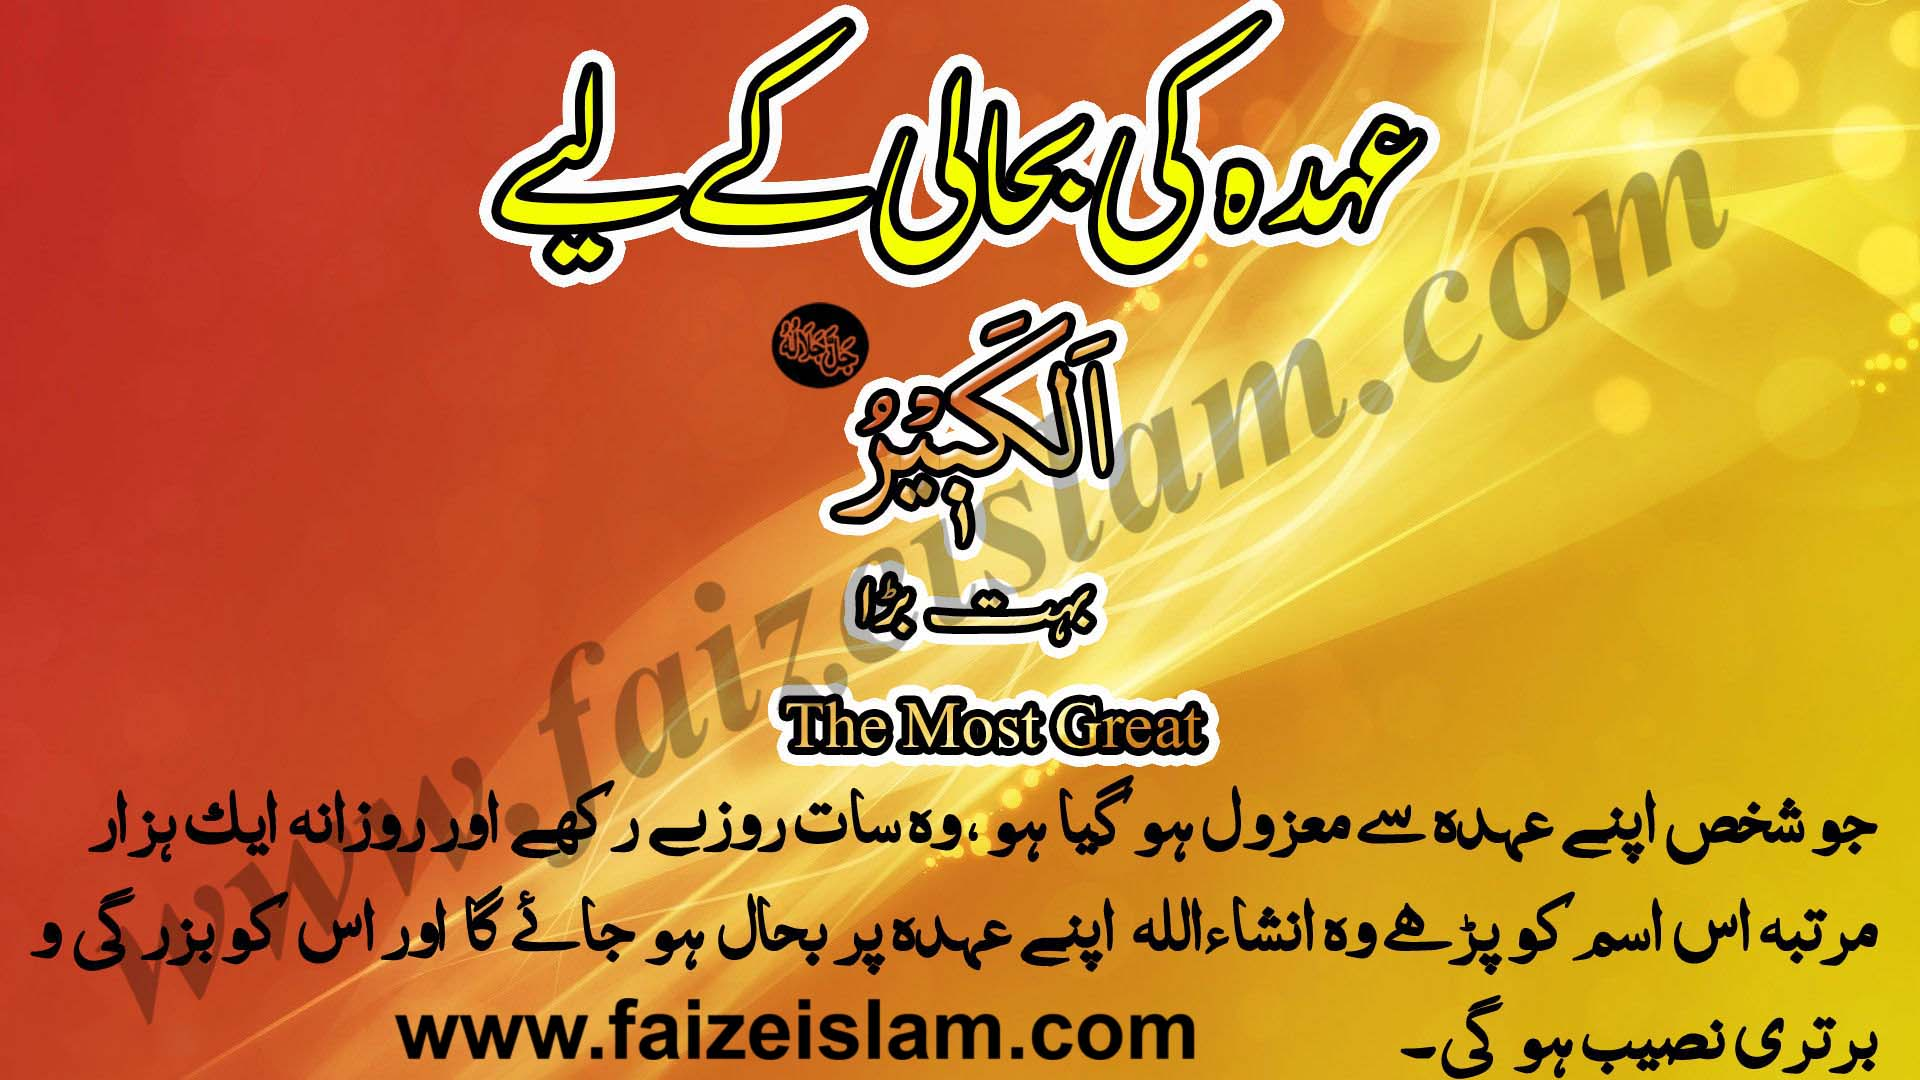 wazifa for job-Job Ki Bahali Kay Liye Wazaif In Urdu